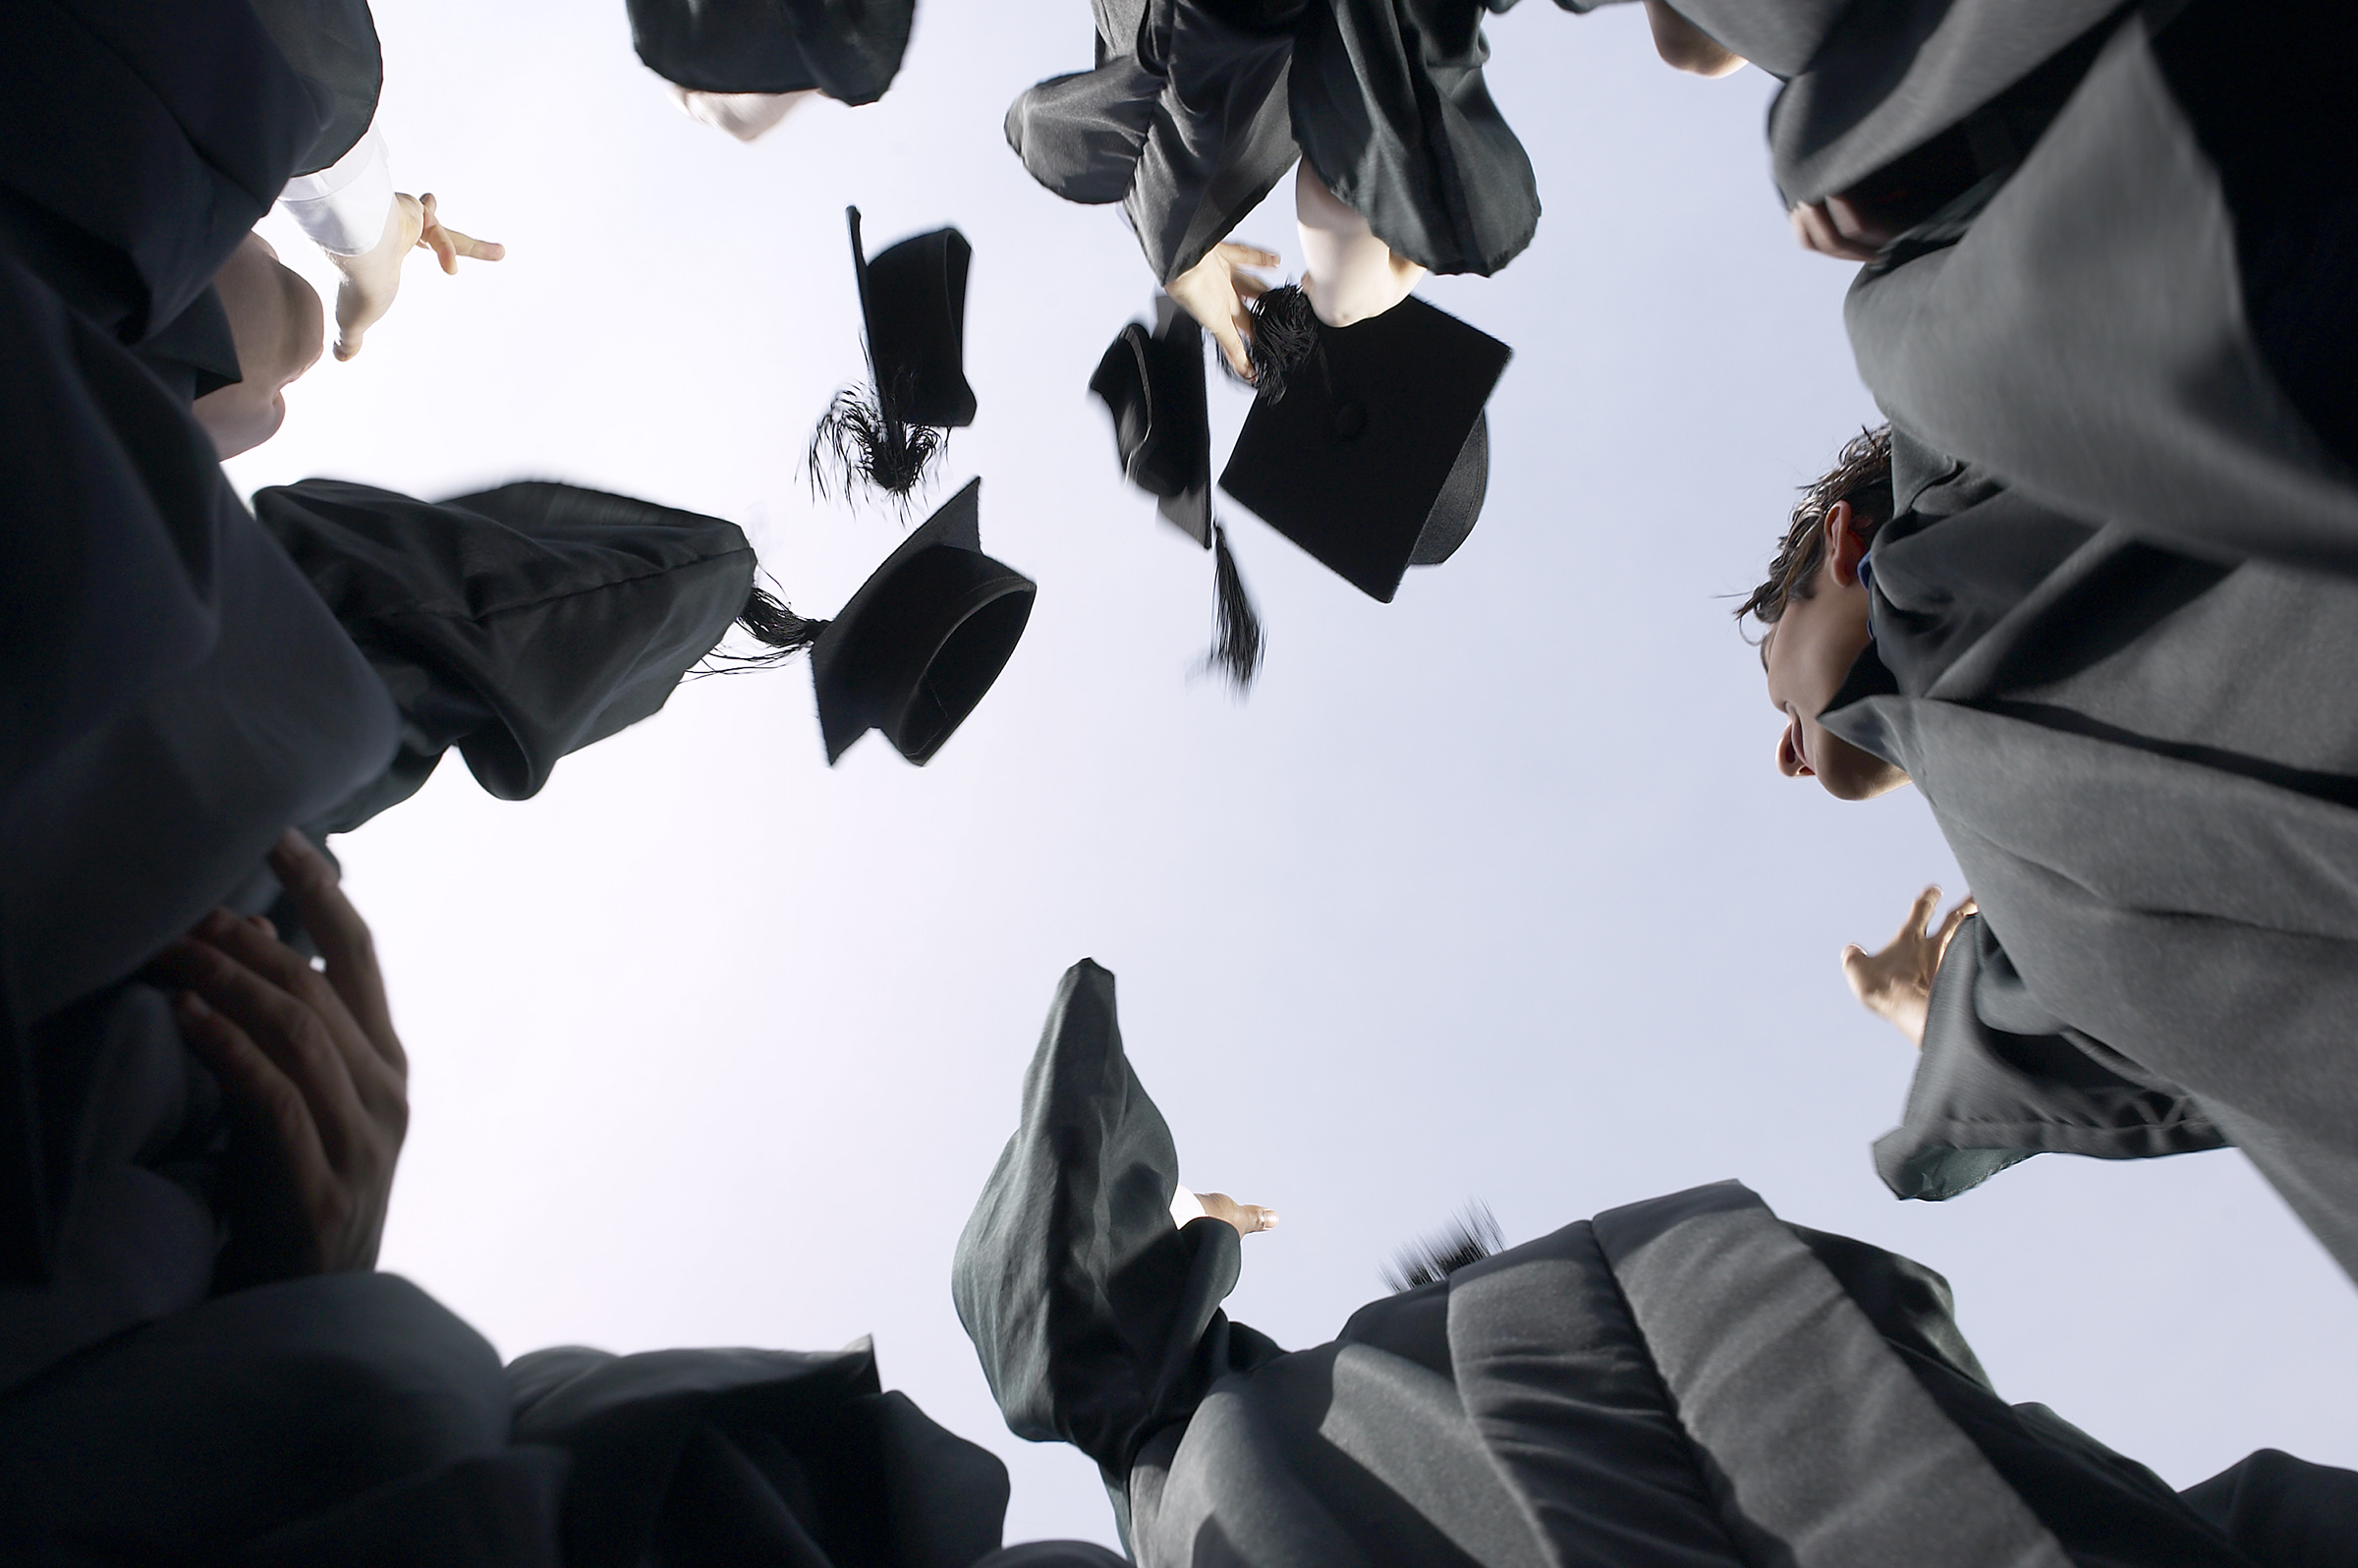 End the School Year Right – DIY Graduation Party